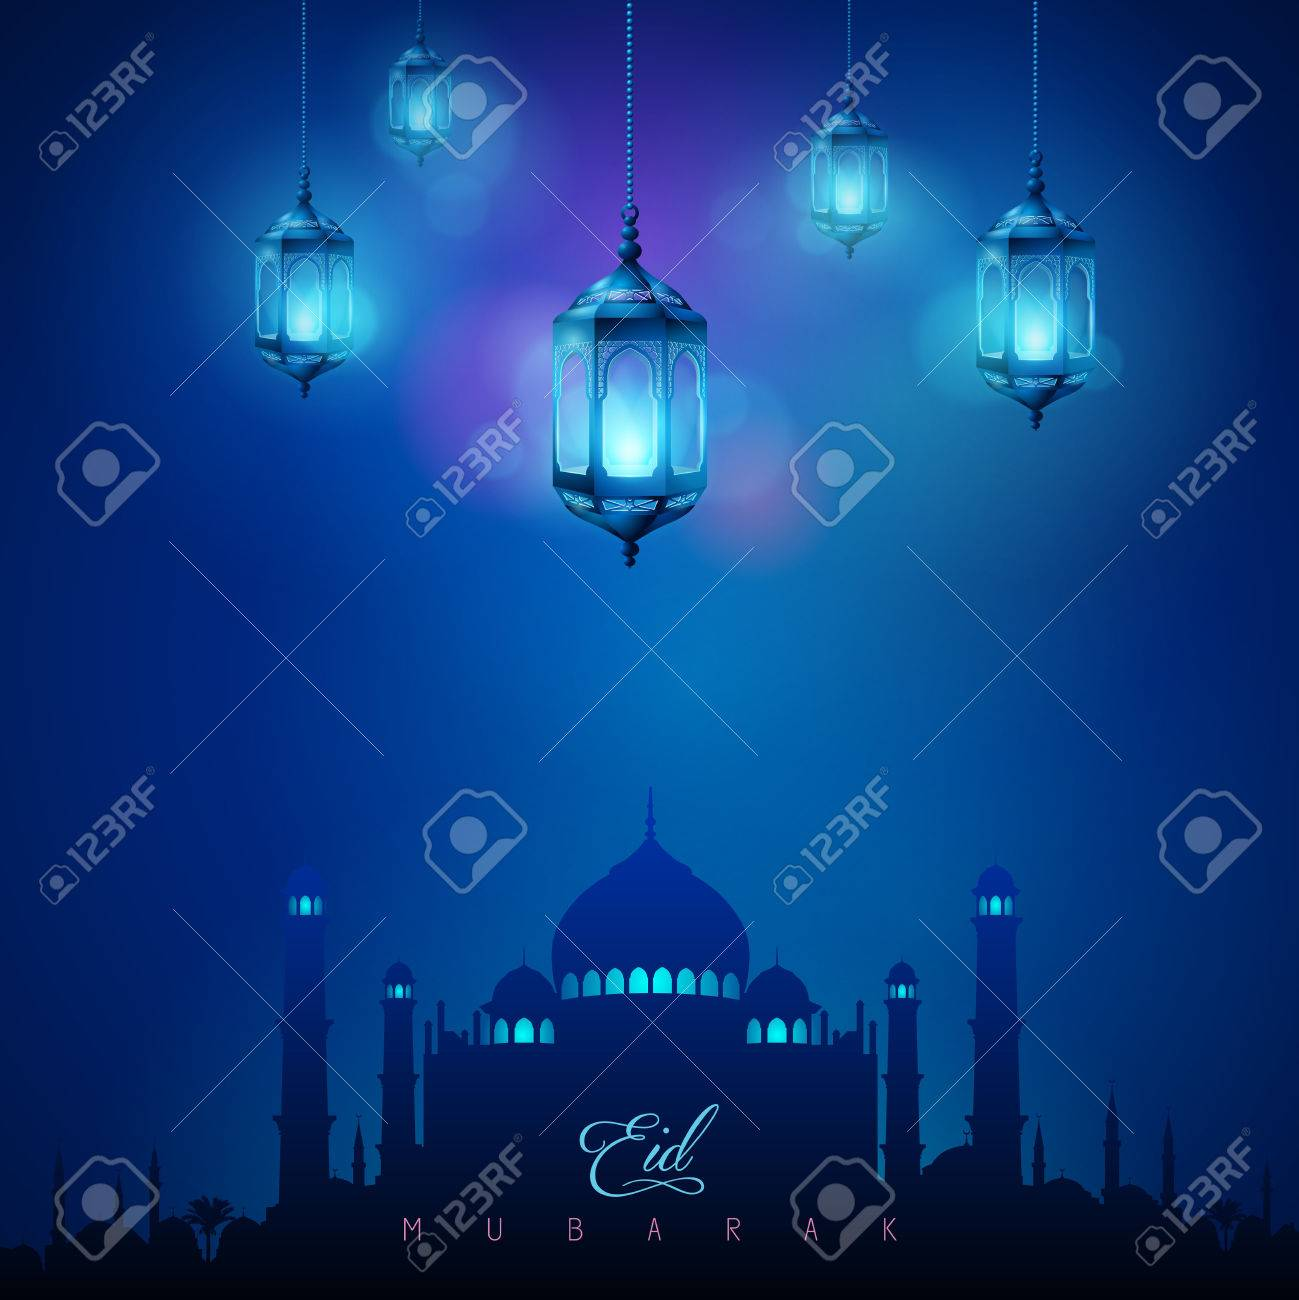 Arabic Lamp And Mosque Islamic Celebration Greeting Background